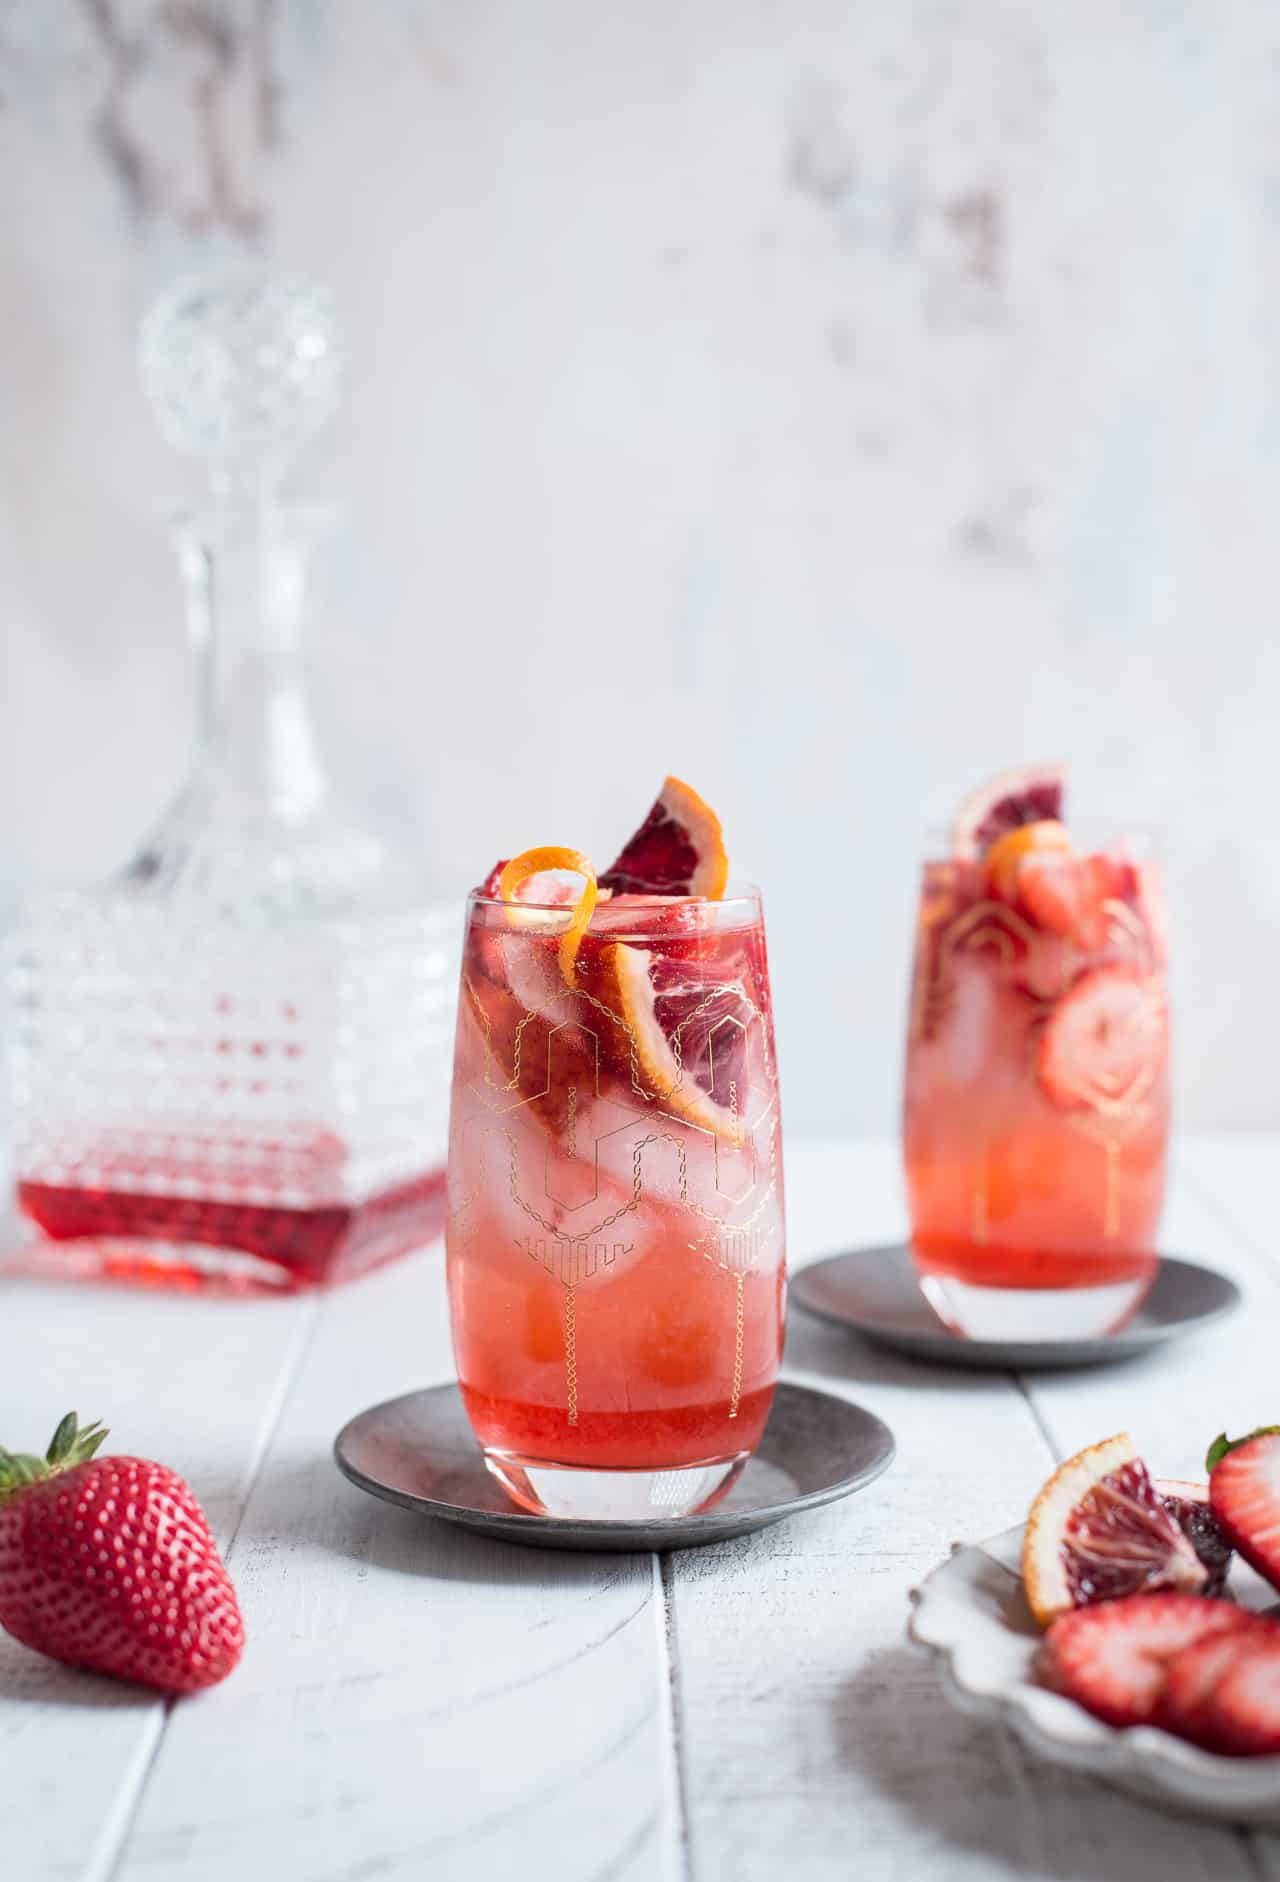 Strawberry Campari Gin Spritz